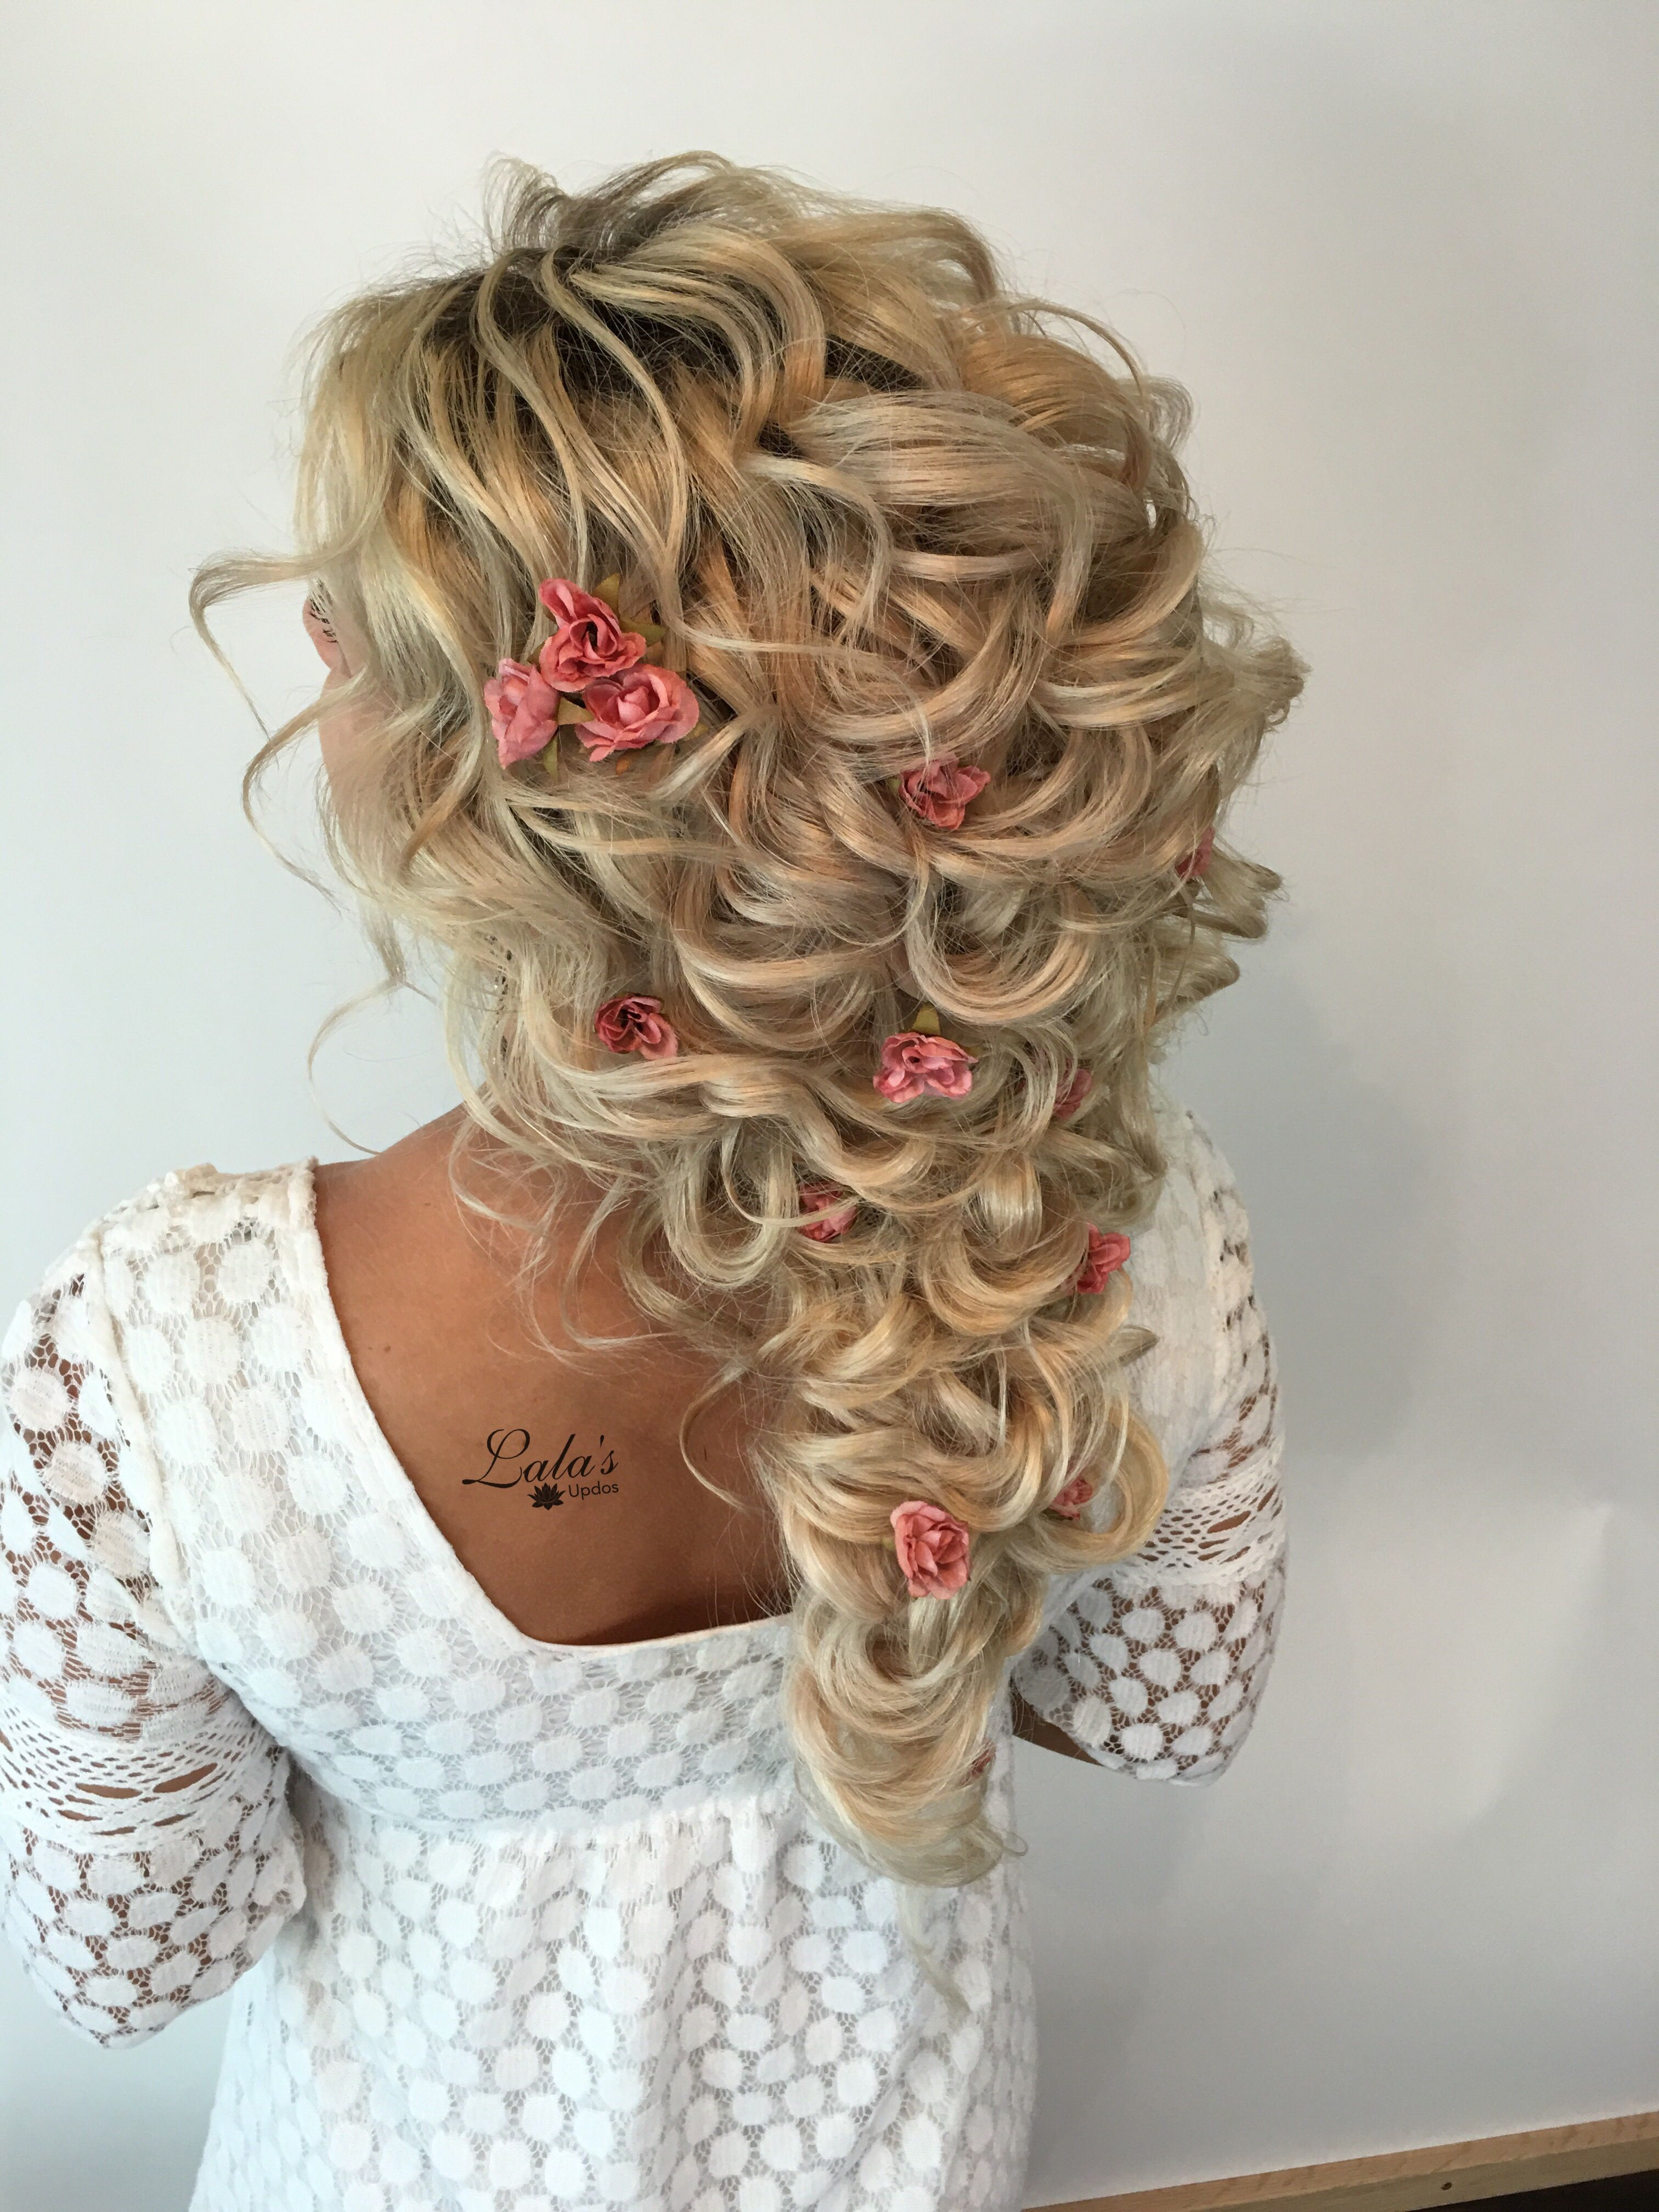 Big Braids Big Hair Bridal Hair Bridal Styles Wedding Hair